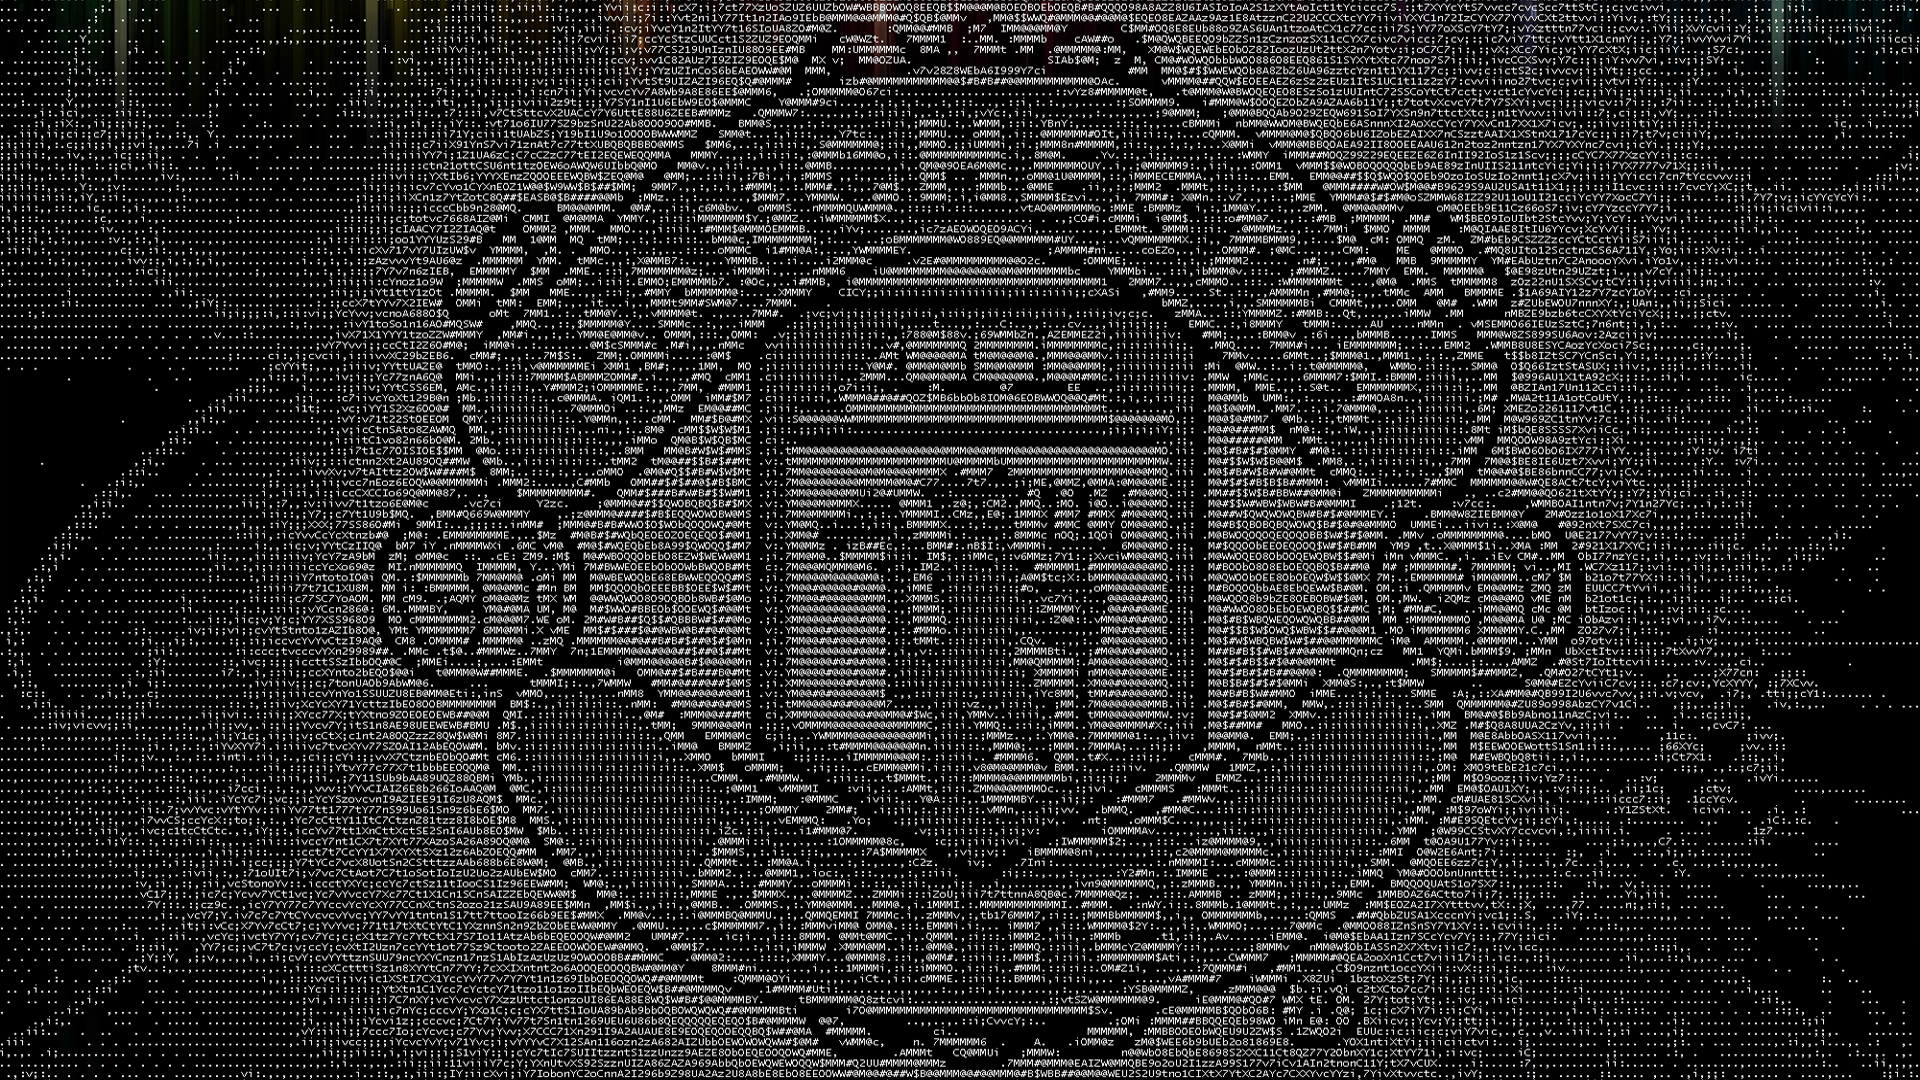 45 awesome manchester united wallpapers on wallpapersafari awesome manchester united wallpapers on